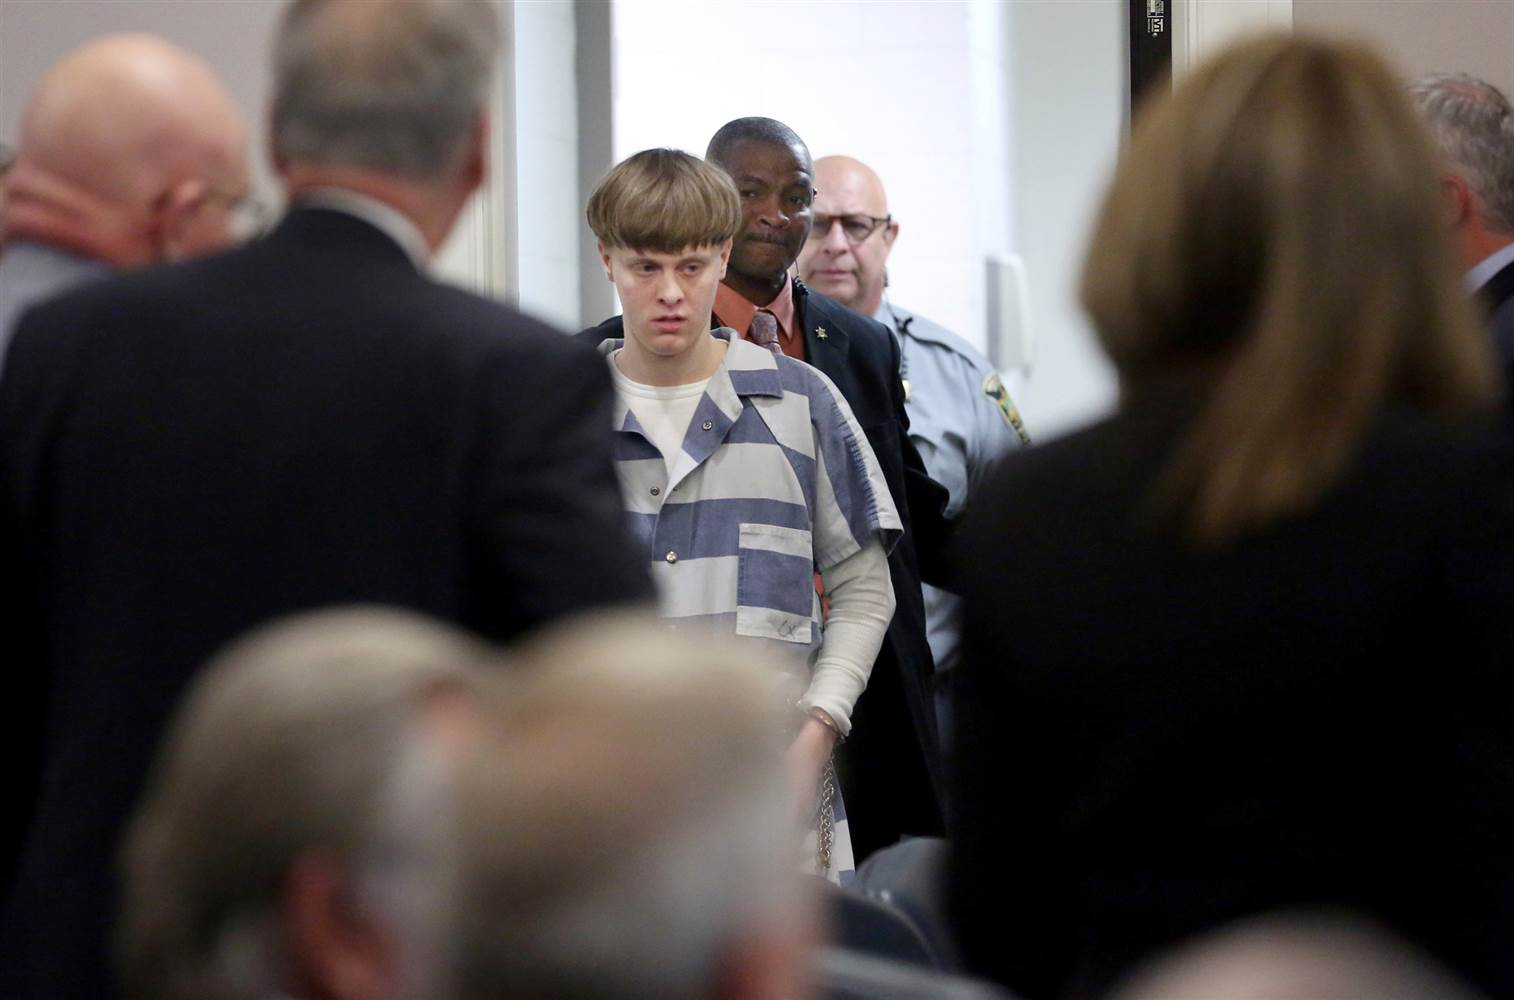 Charleston Church Shooters Sister Arrested For Bringing Weapons To School